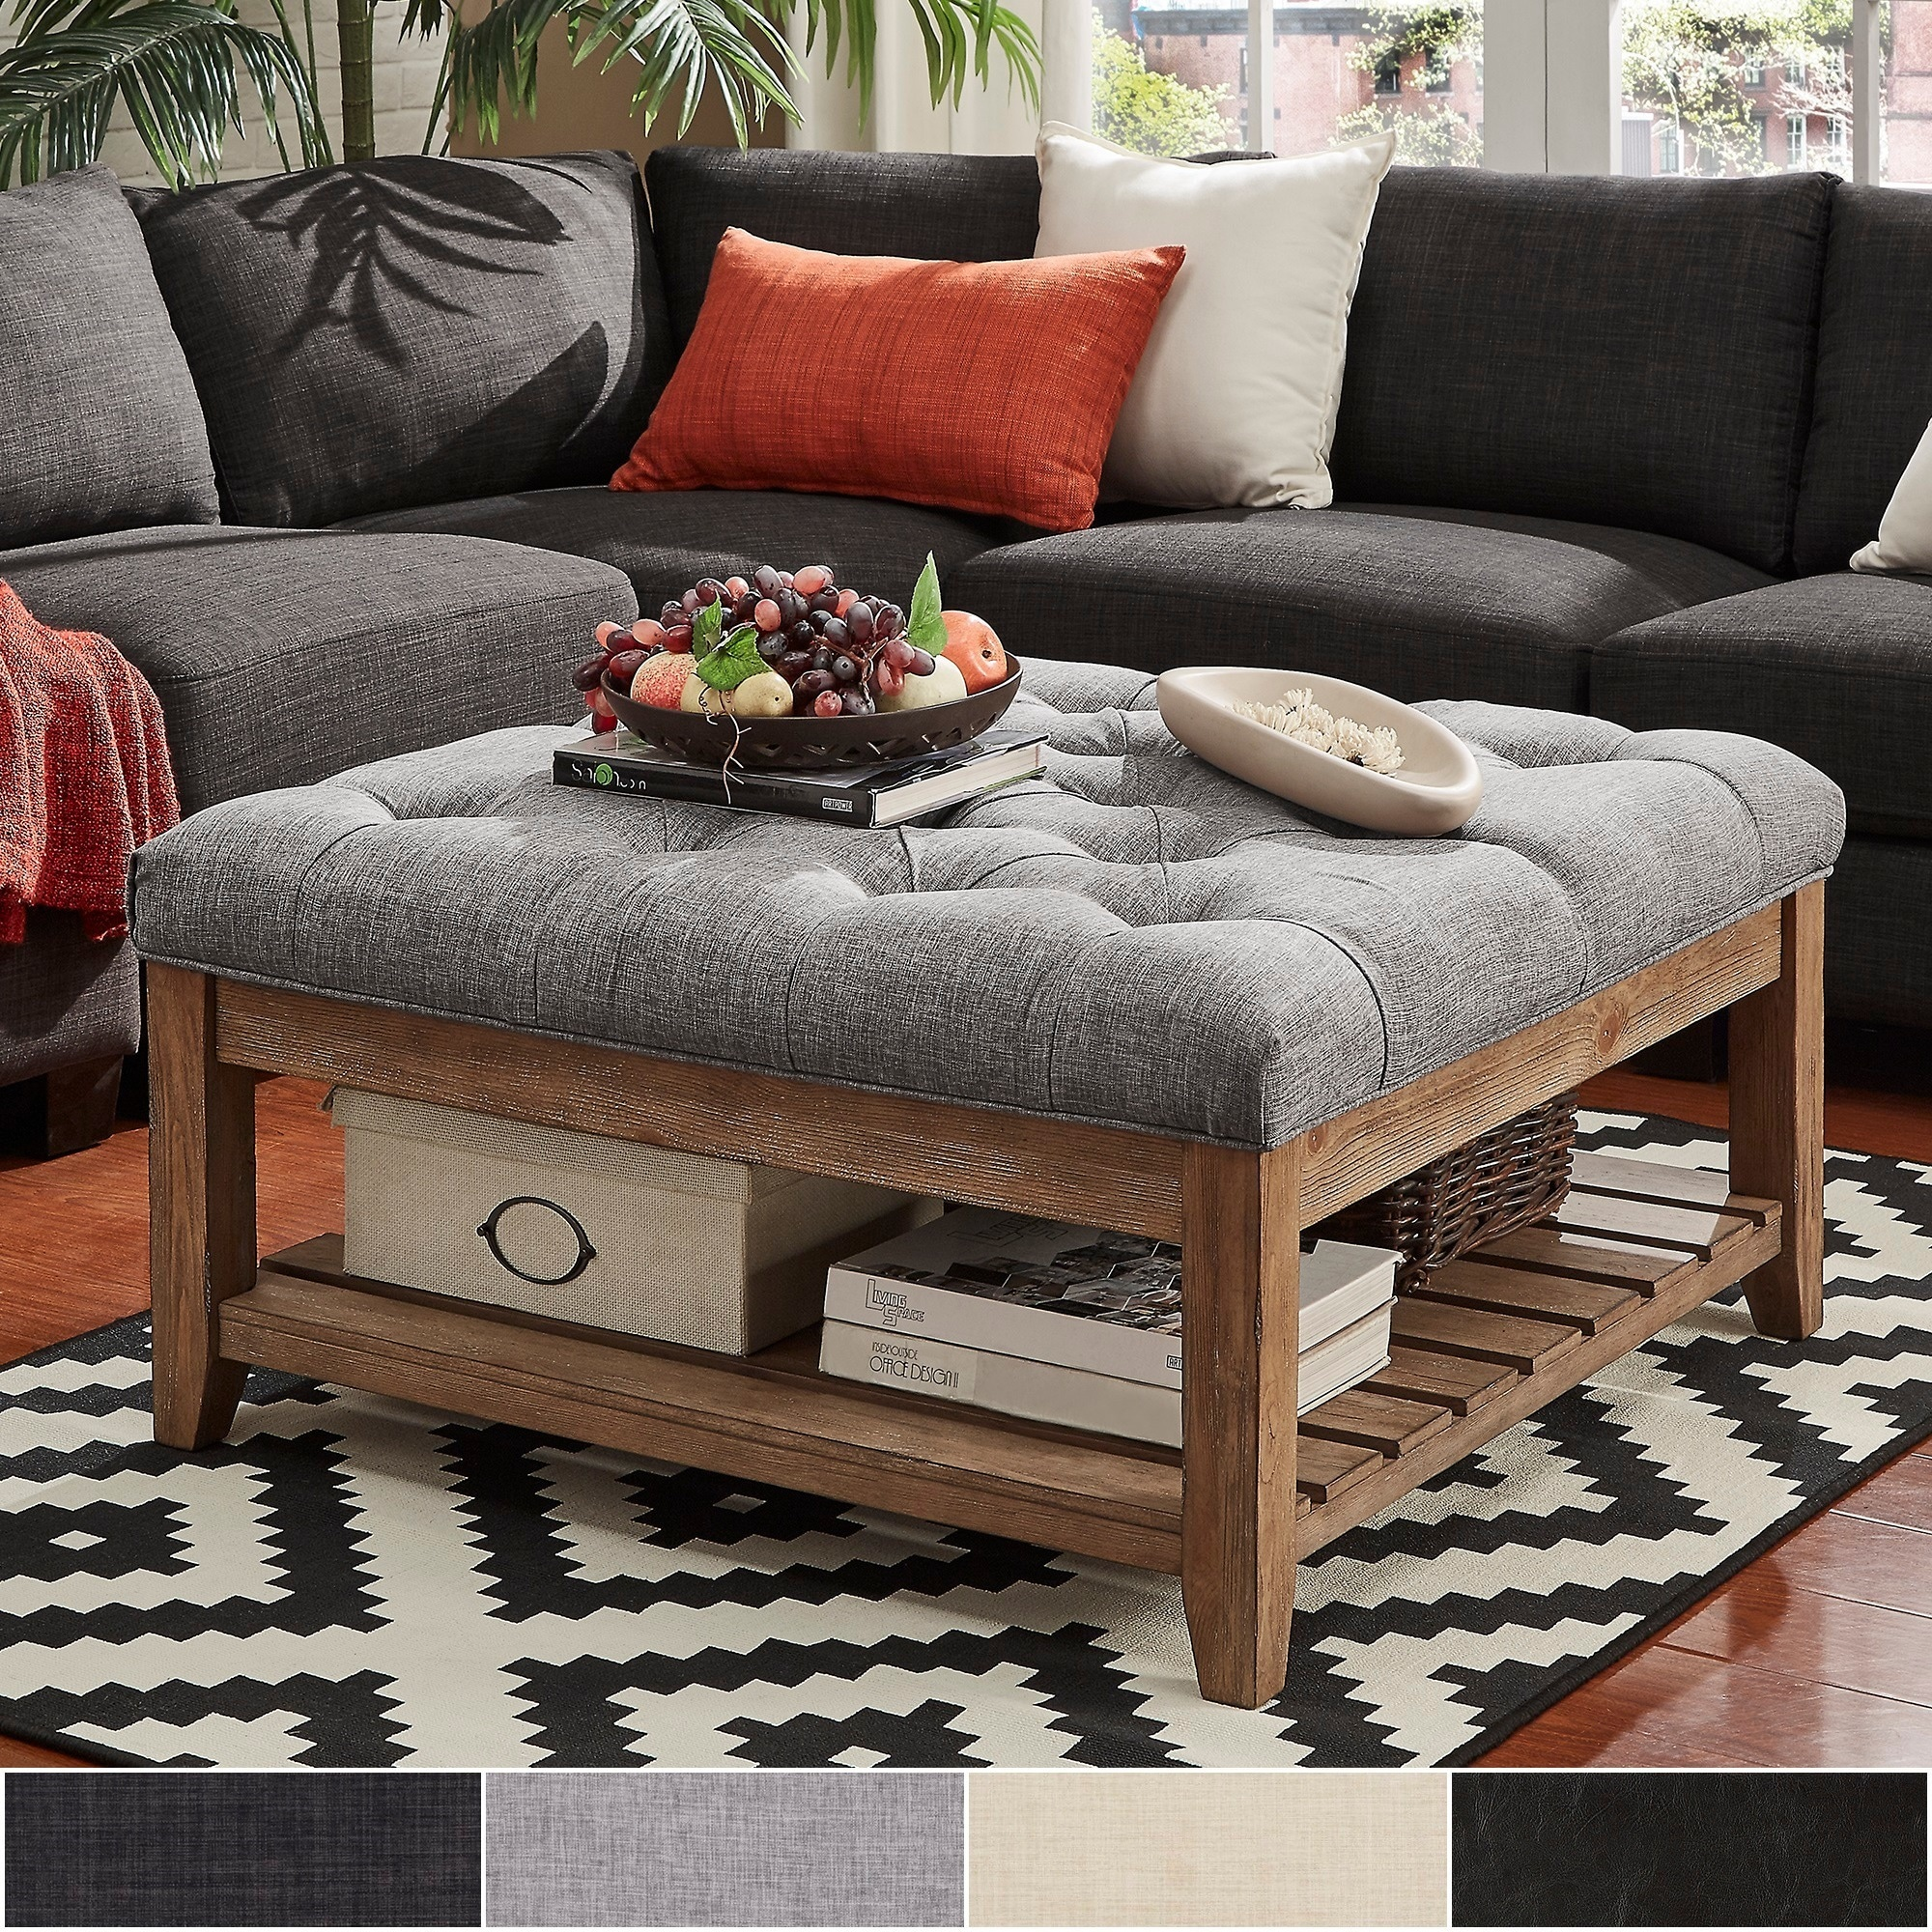 Coffee Table Ottoman.Lennon Pine Planked Storage Ottoman Coffee Table By Inspire Q Artisan